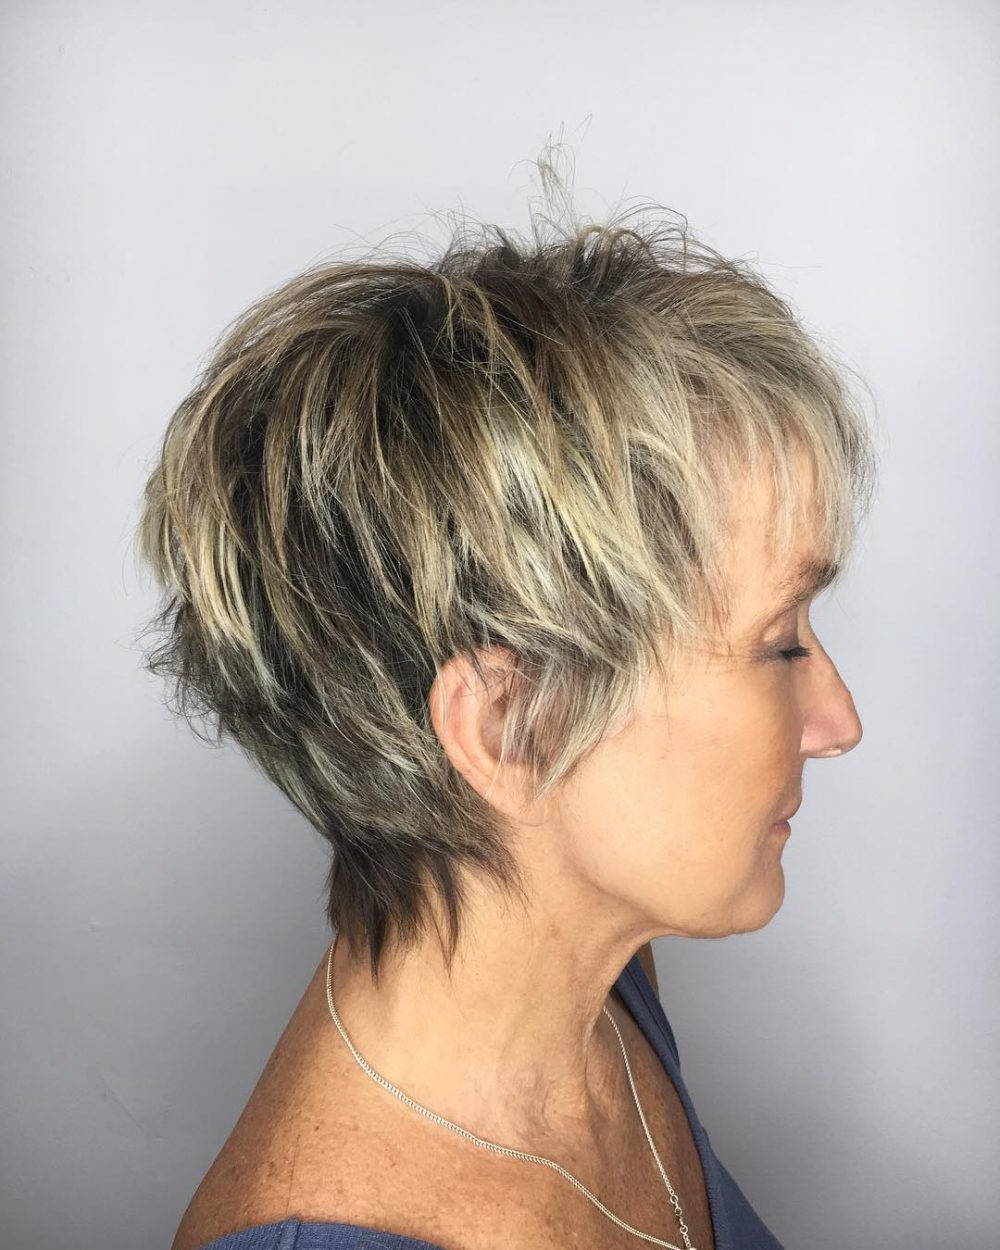 Top 22 Choppy Hairstyles You'll See In 2018 With Choppy Short Hairstyles For Older Women (View 7 of 25)